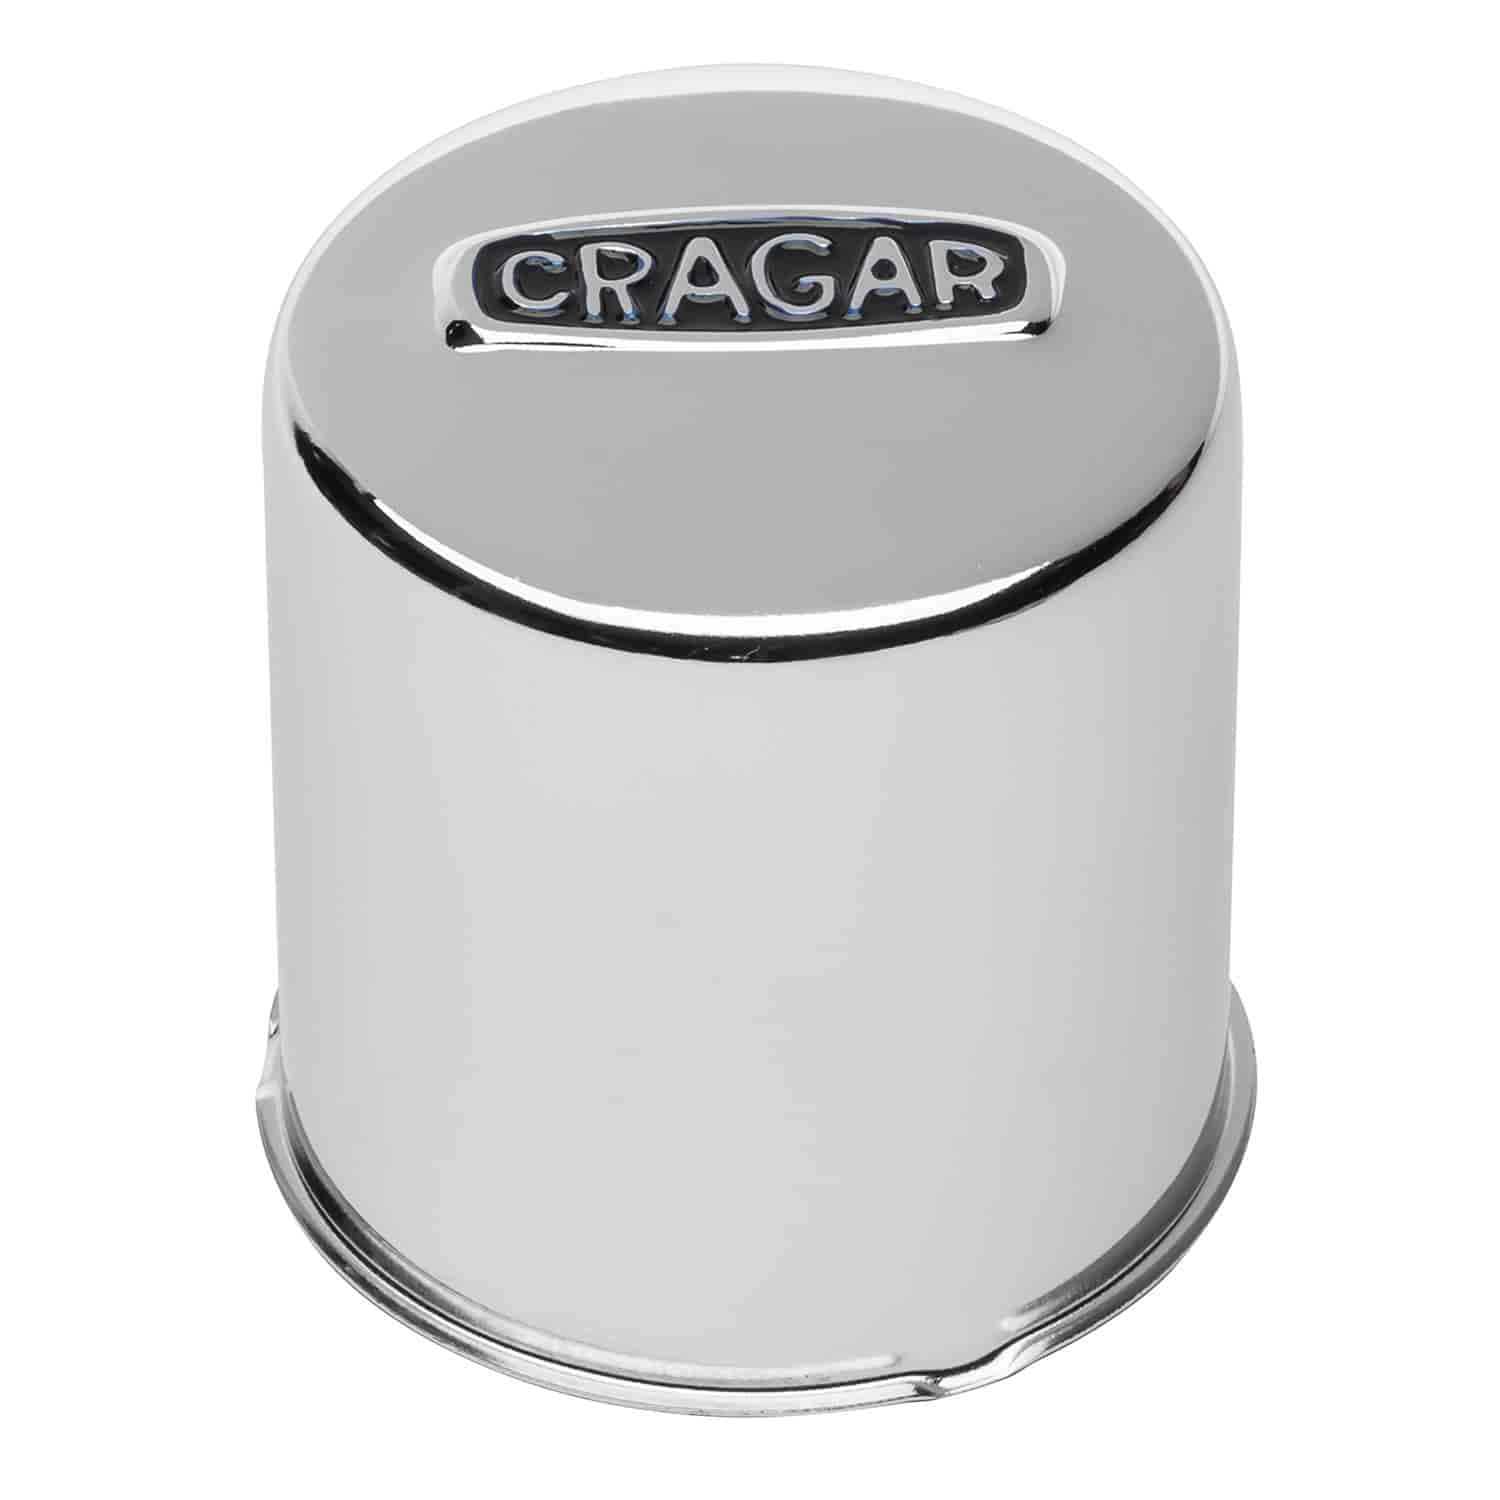 Cragar 29270-1 - Cragar Wheel Center Caps